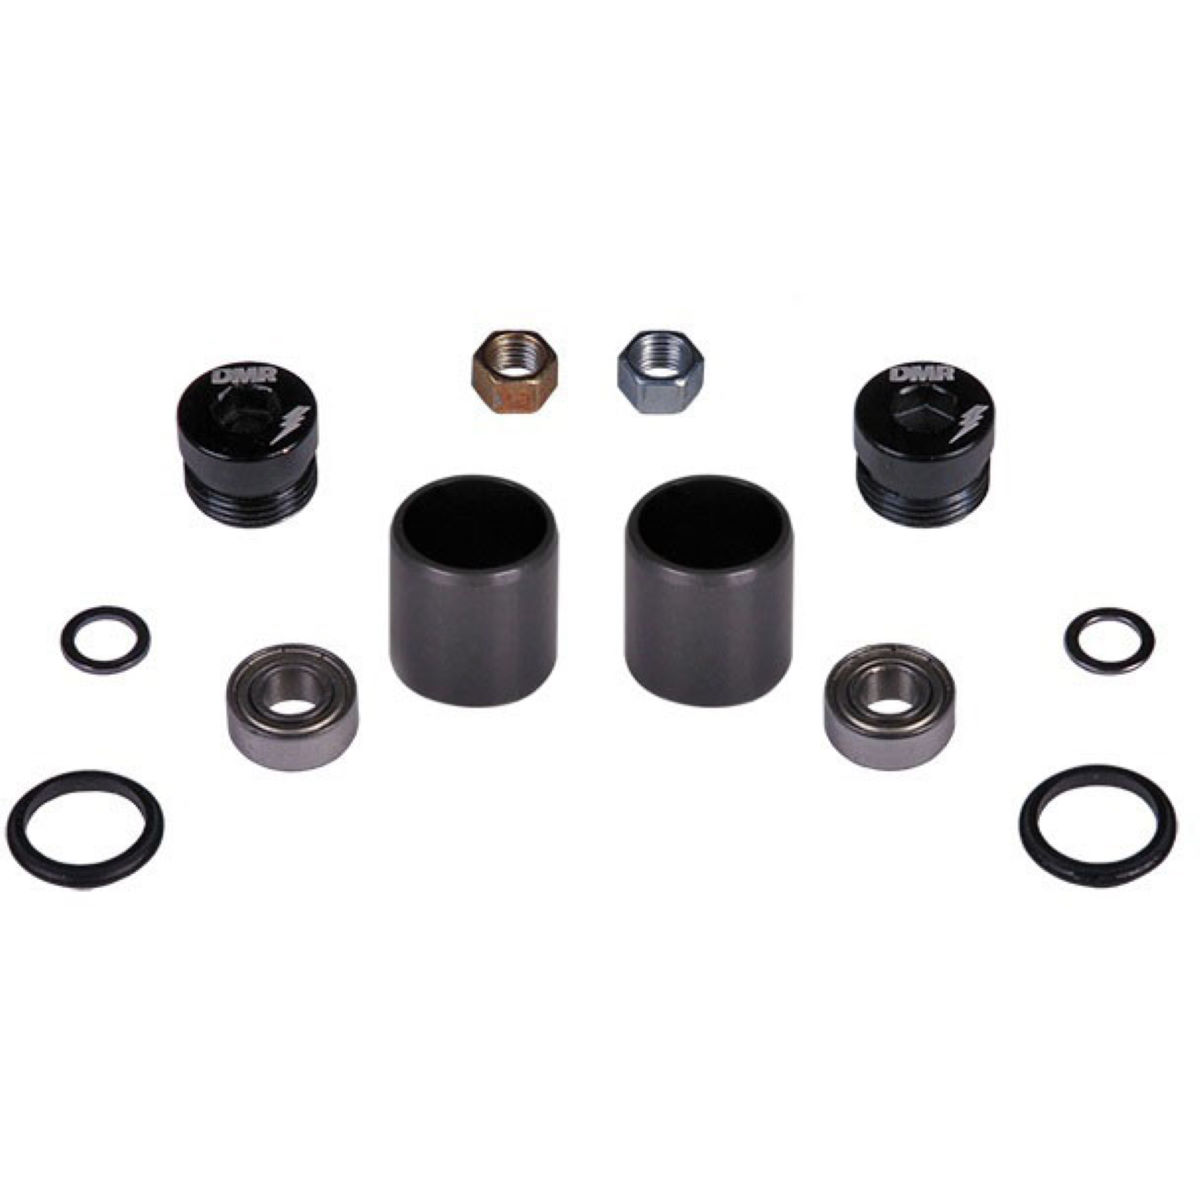 Dmr Pedal Service Kit - One Size Neutral  Flat Pedals